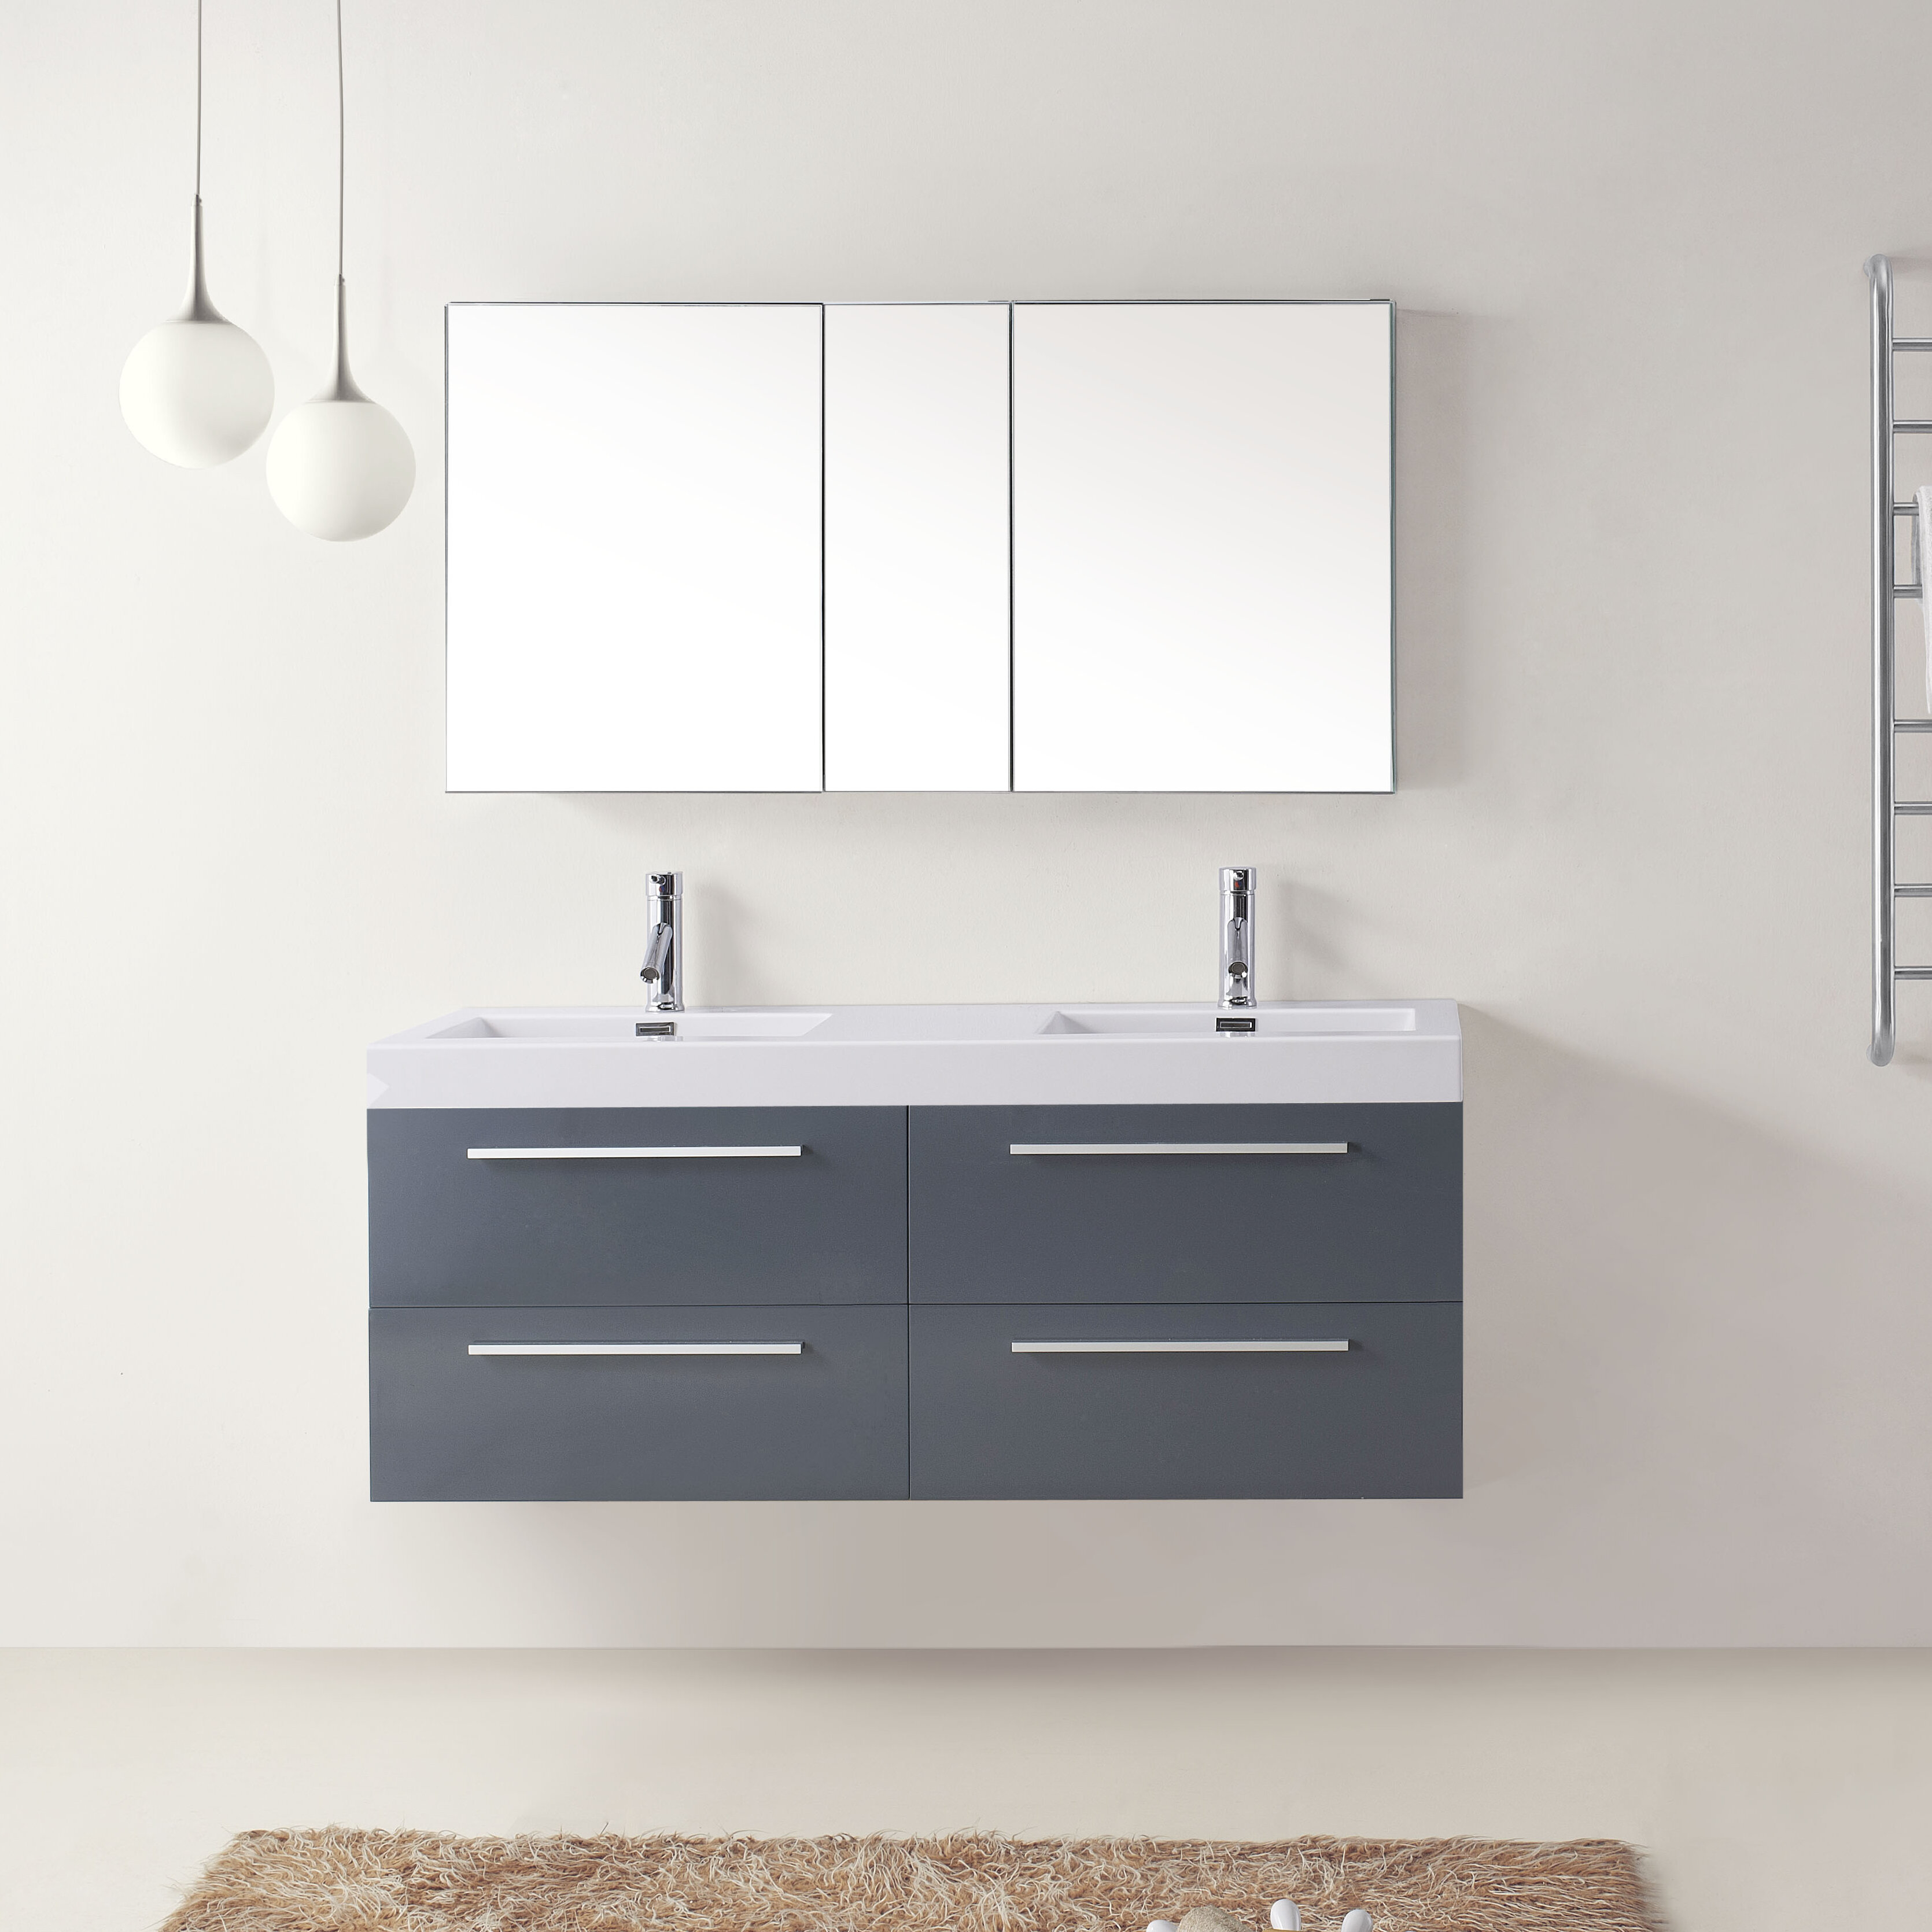 product studio en h bathroom from drawer bath b architonic by drawers idi bender cabinet shelving hanging